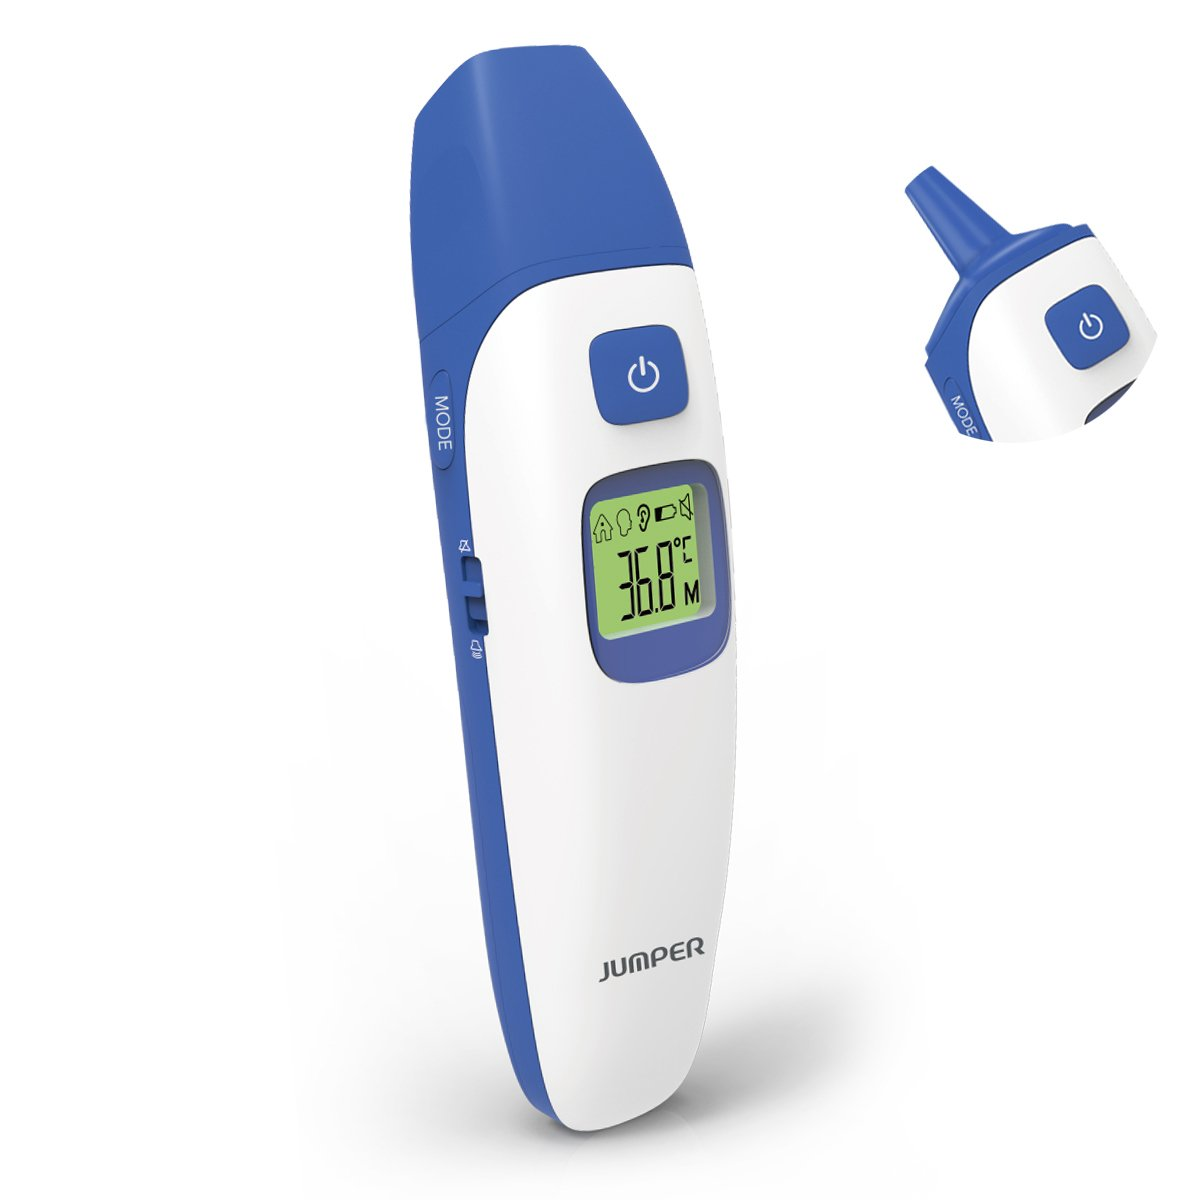 Forehead&Ear Thermometer, Fochea Infrared Digital Medical Thermometer with 1 Sec Accurate Reading ,20 Readings Memory Recall and Fever Alert for Baby,Infant,Toddler and Adults,FDA and CE Approved